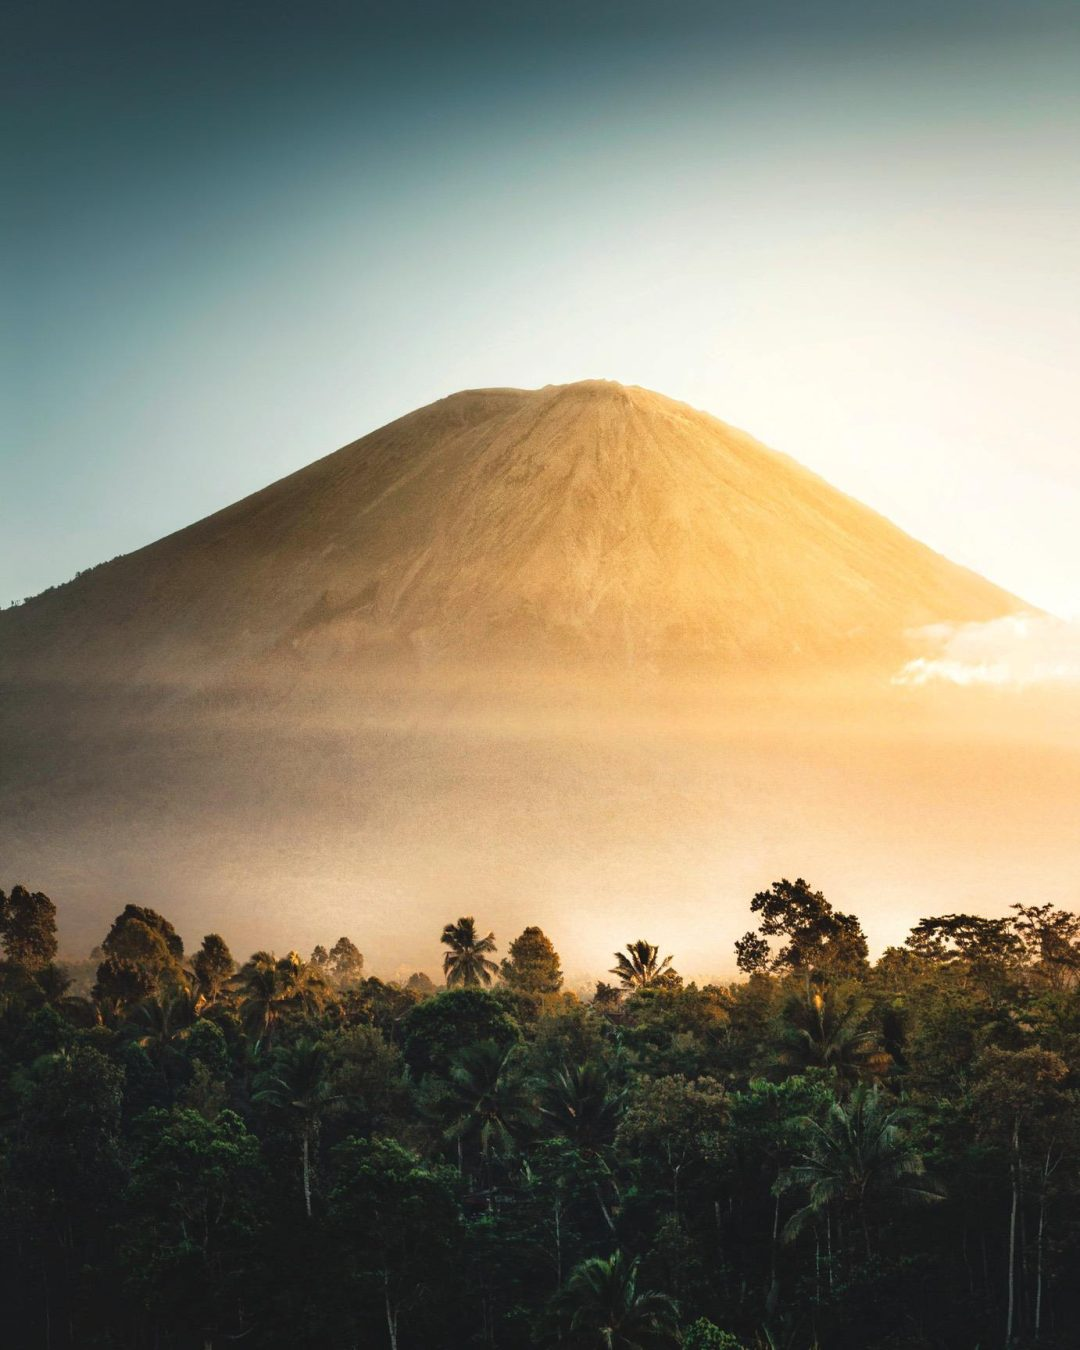 Tropic mountain wallpaper for iphone with sunrise